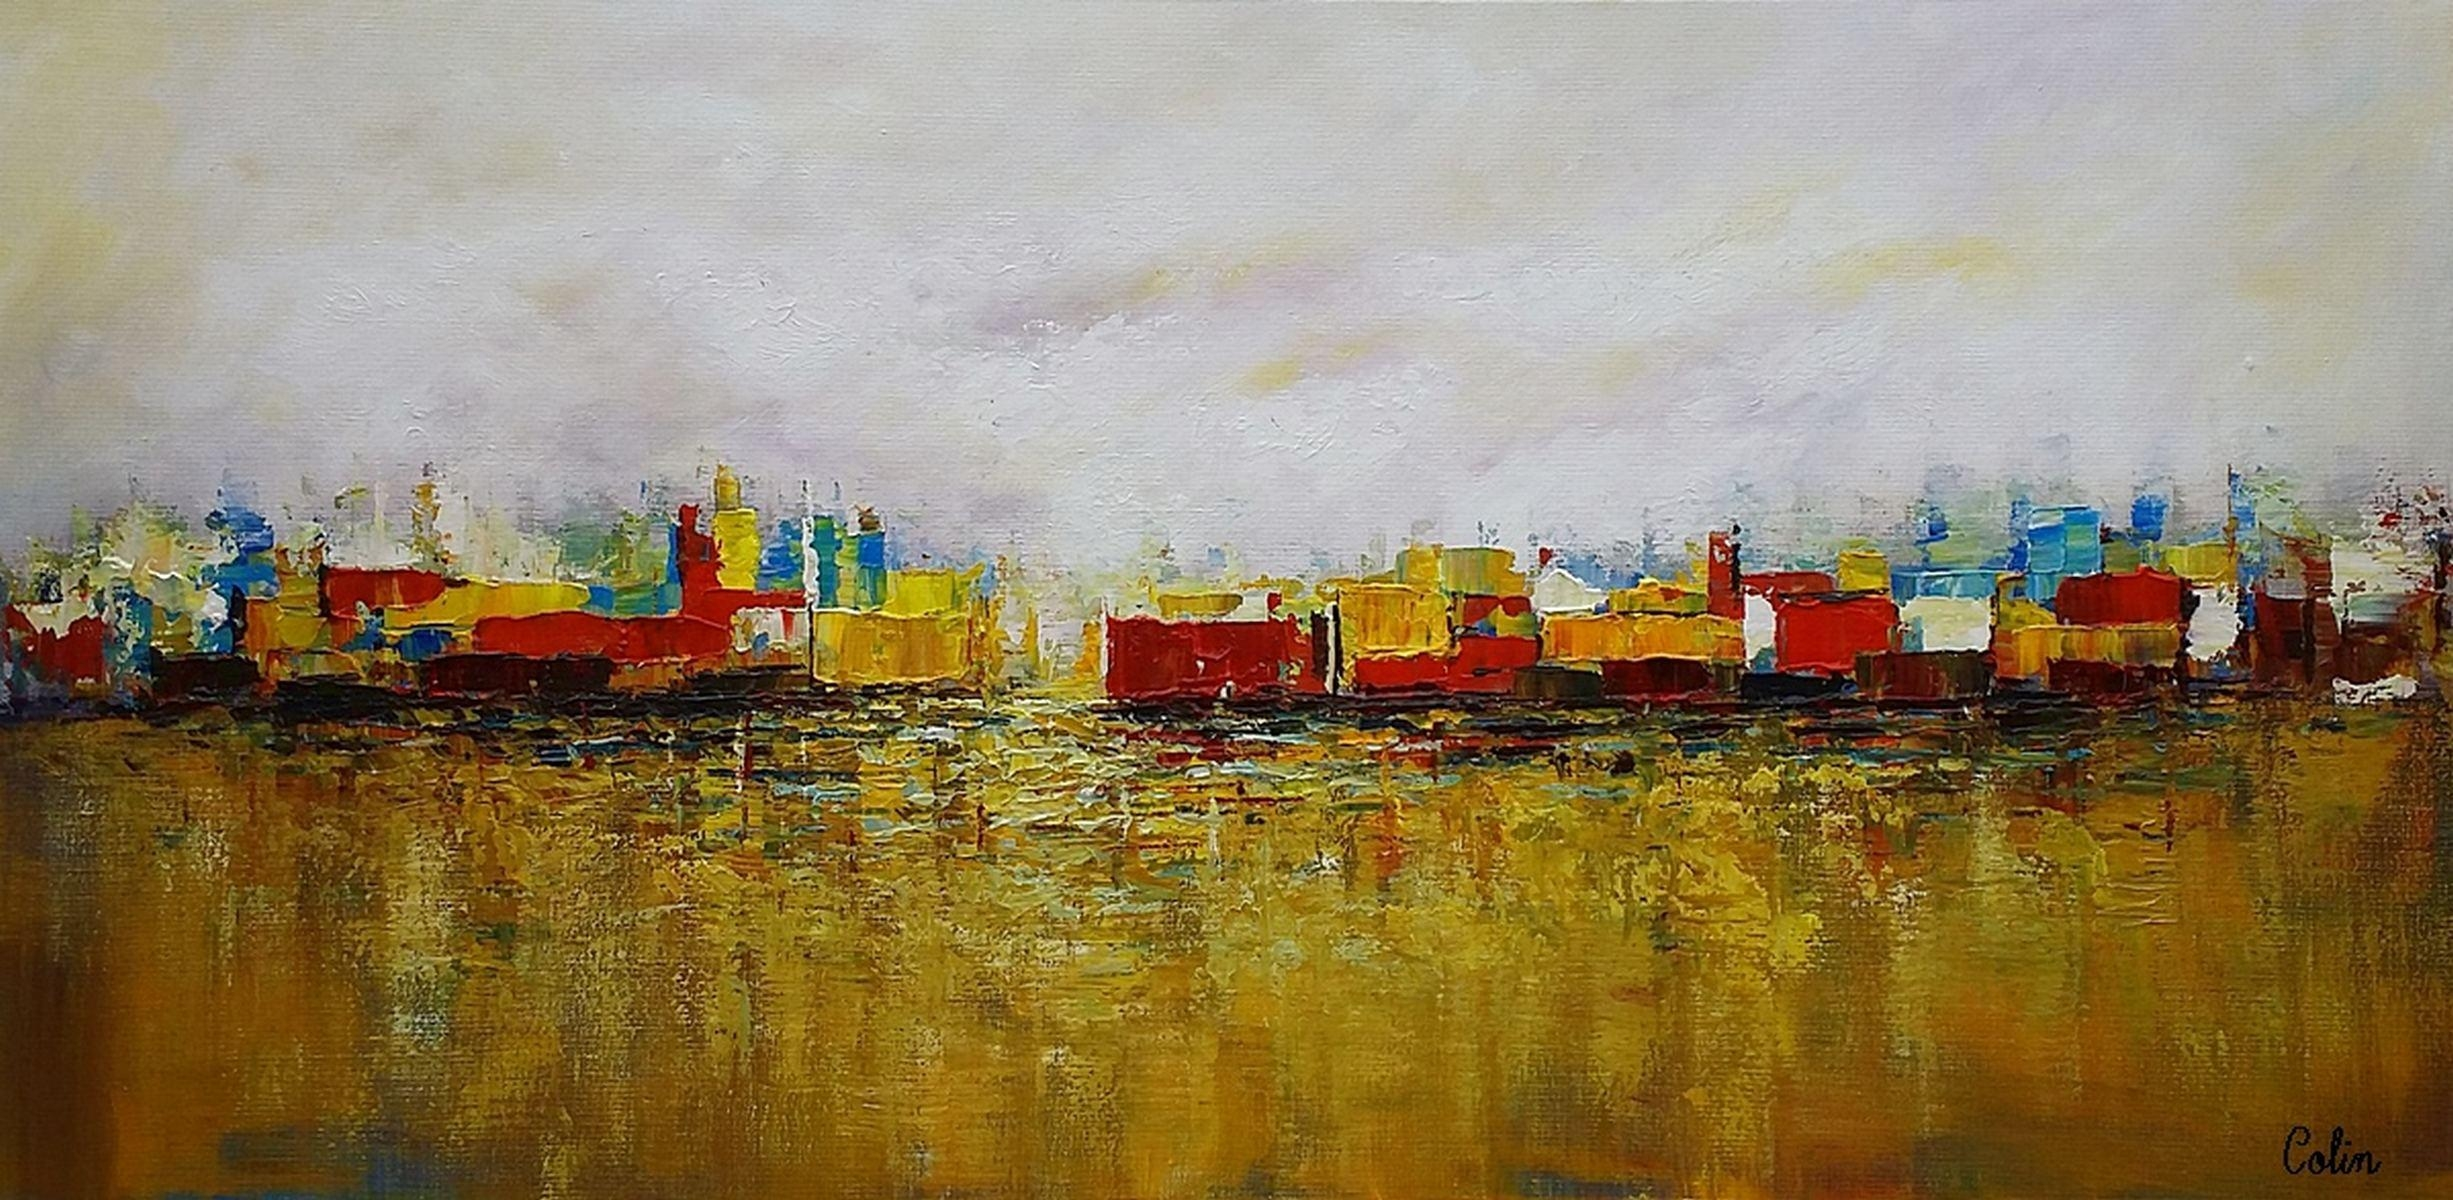 Cityscape Art, Canvas Wall Art, Landscape Painting, Contemporary Regarding Cityscape Canvas Wall Art (View 19 of 20)